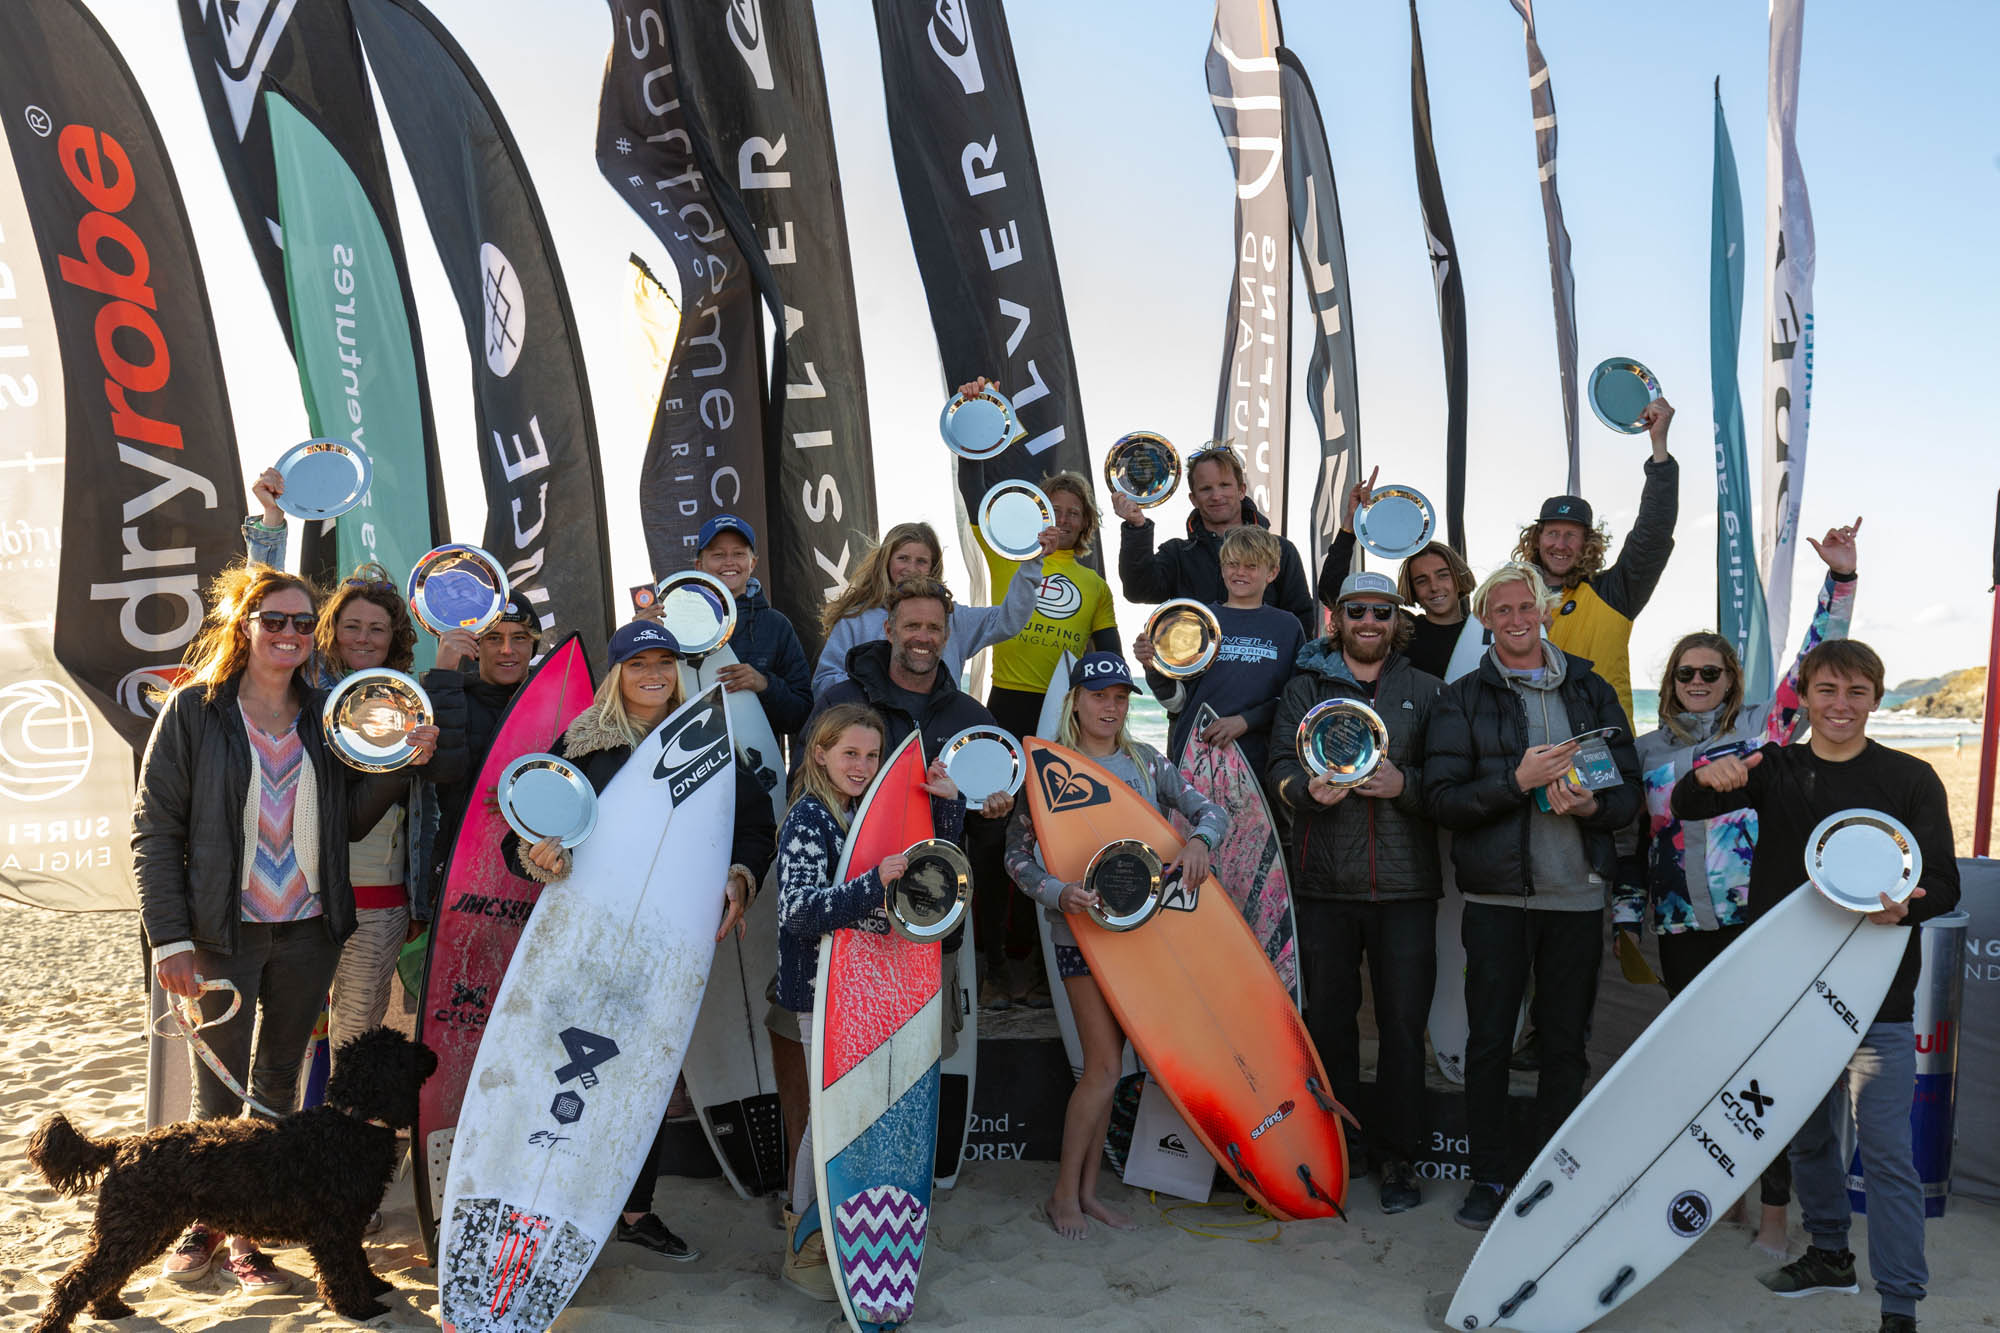 IN PICTURES: Relive the action | English Surfing Champions Crowned on Epic Weekend